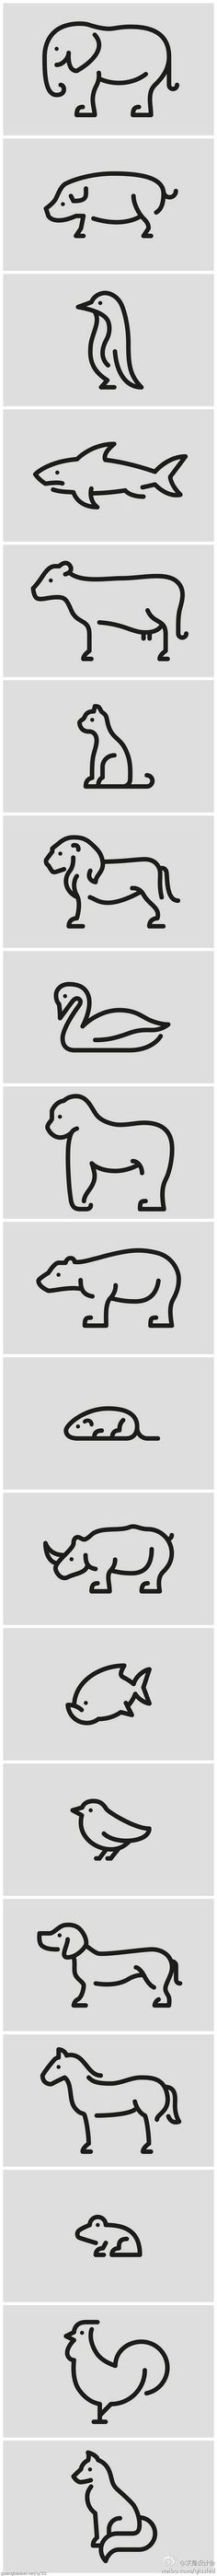 Animal Pictograms by Jan Filek, via Behance: